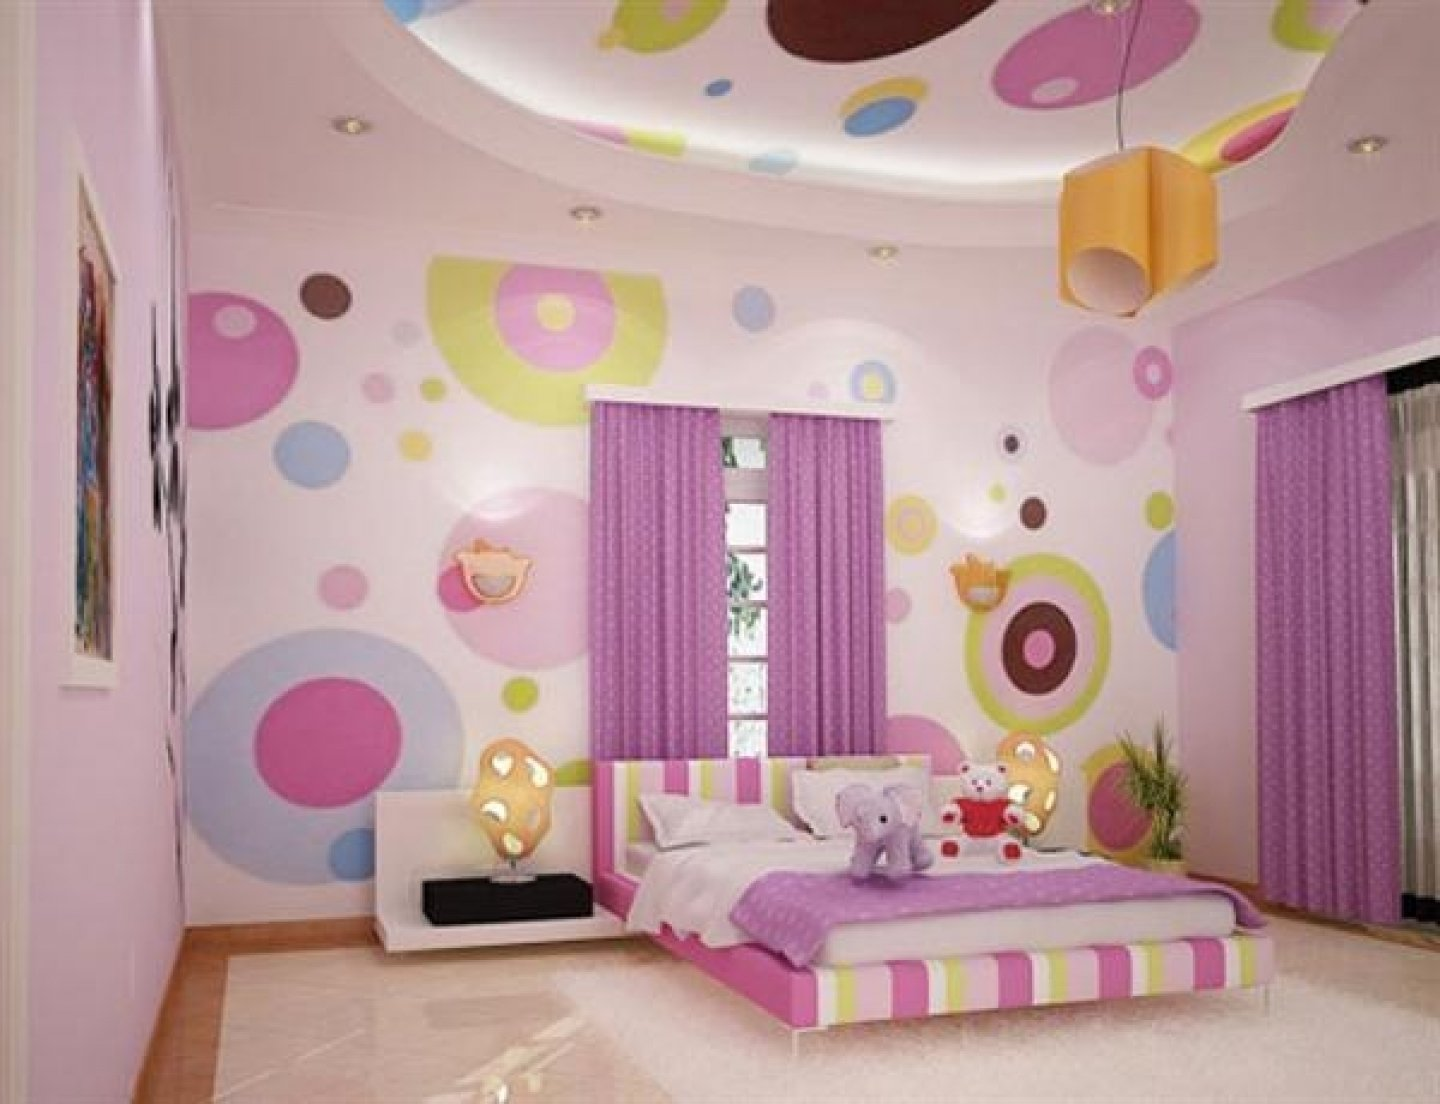 10 Wonderful Painting Ideas For Girls Room cool colorful square pattern wall colors theme girls bedroom